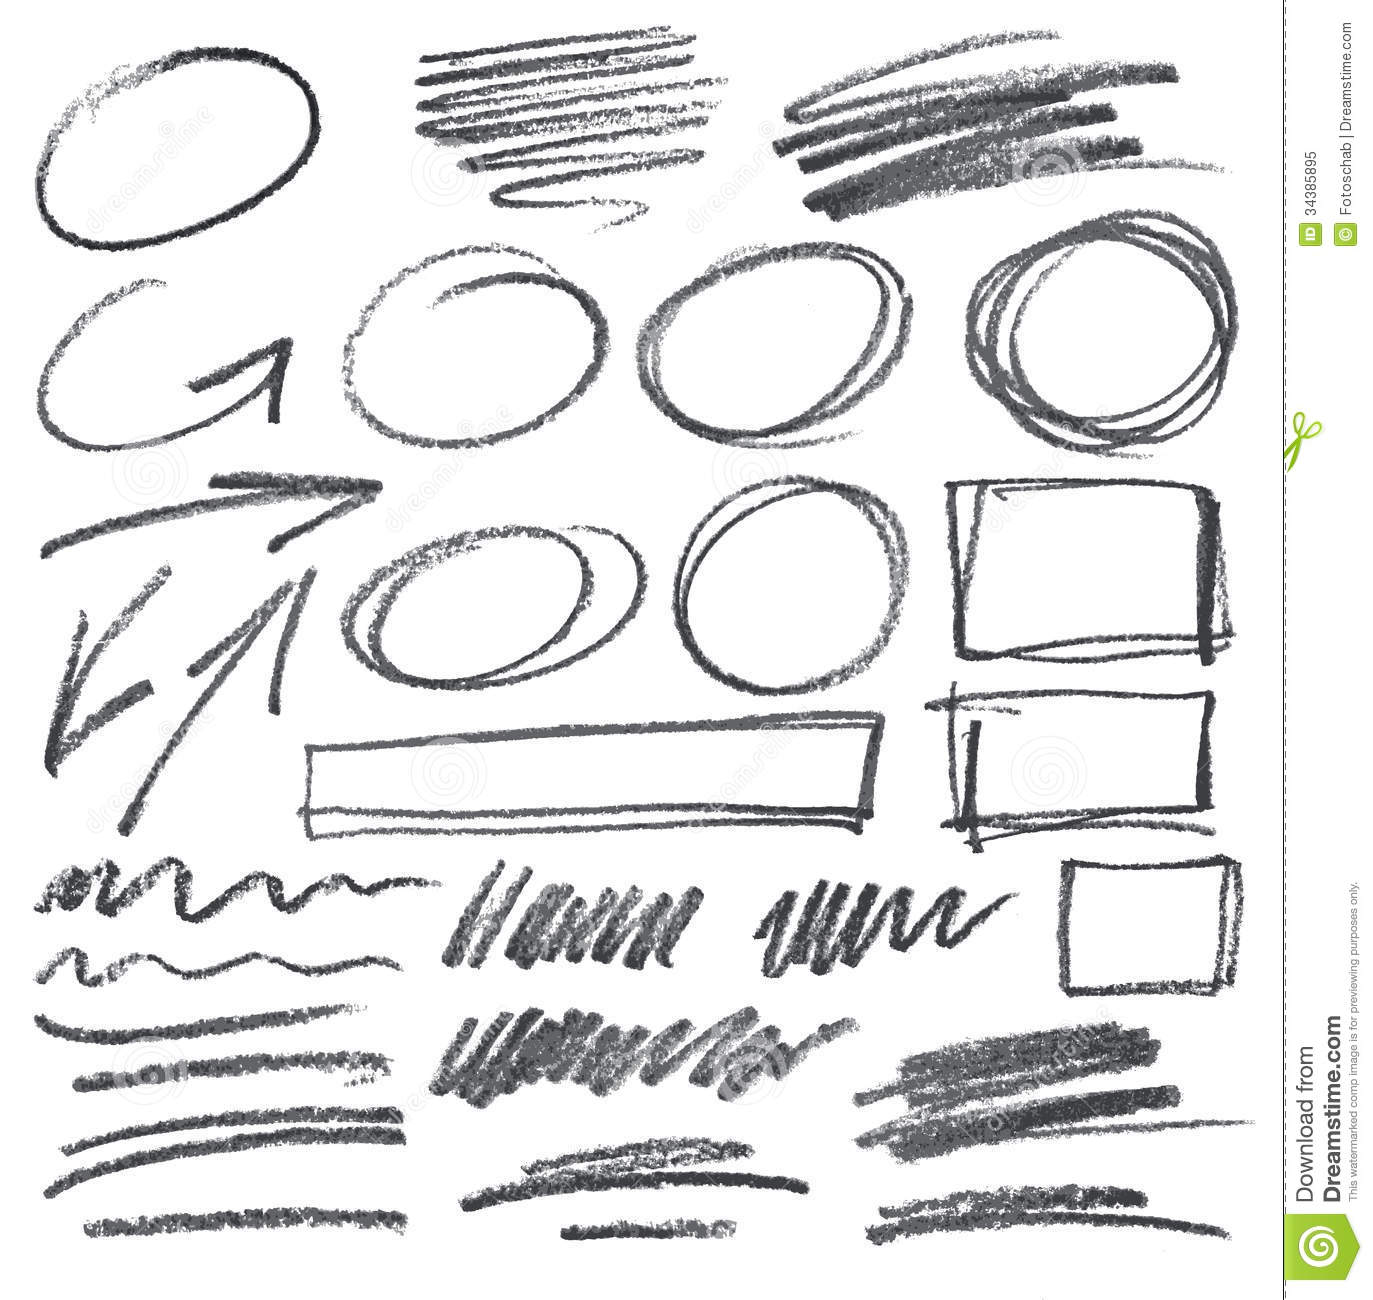 Check Box Image also Royalty Free Stock Photo Vector Pencil Scribbles Design Elements Color Can Be Changed One Click Image34385895 likewise Bulletfont bulletpoint custom customshape double listicon point shape smooth square typography wingding icon as well Pride Fullmetal Alchemist Minimalist Wallpaper 541481804 furthermore How To Create A Multi Level List In Powerpoint. on square bullet symbol